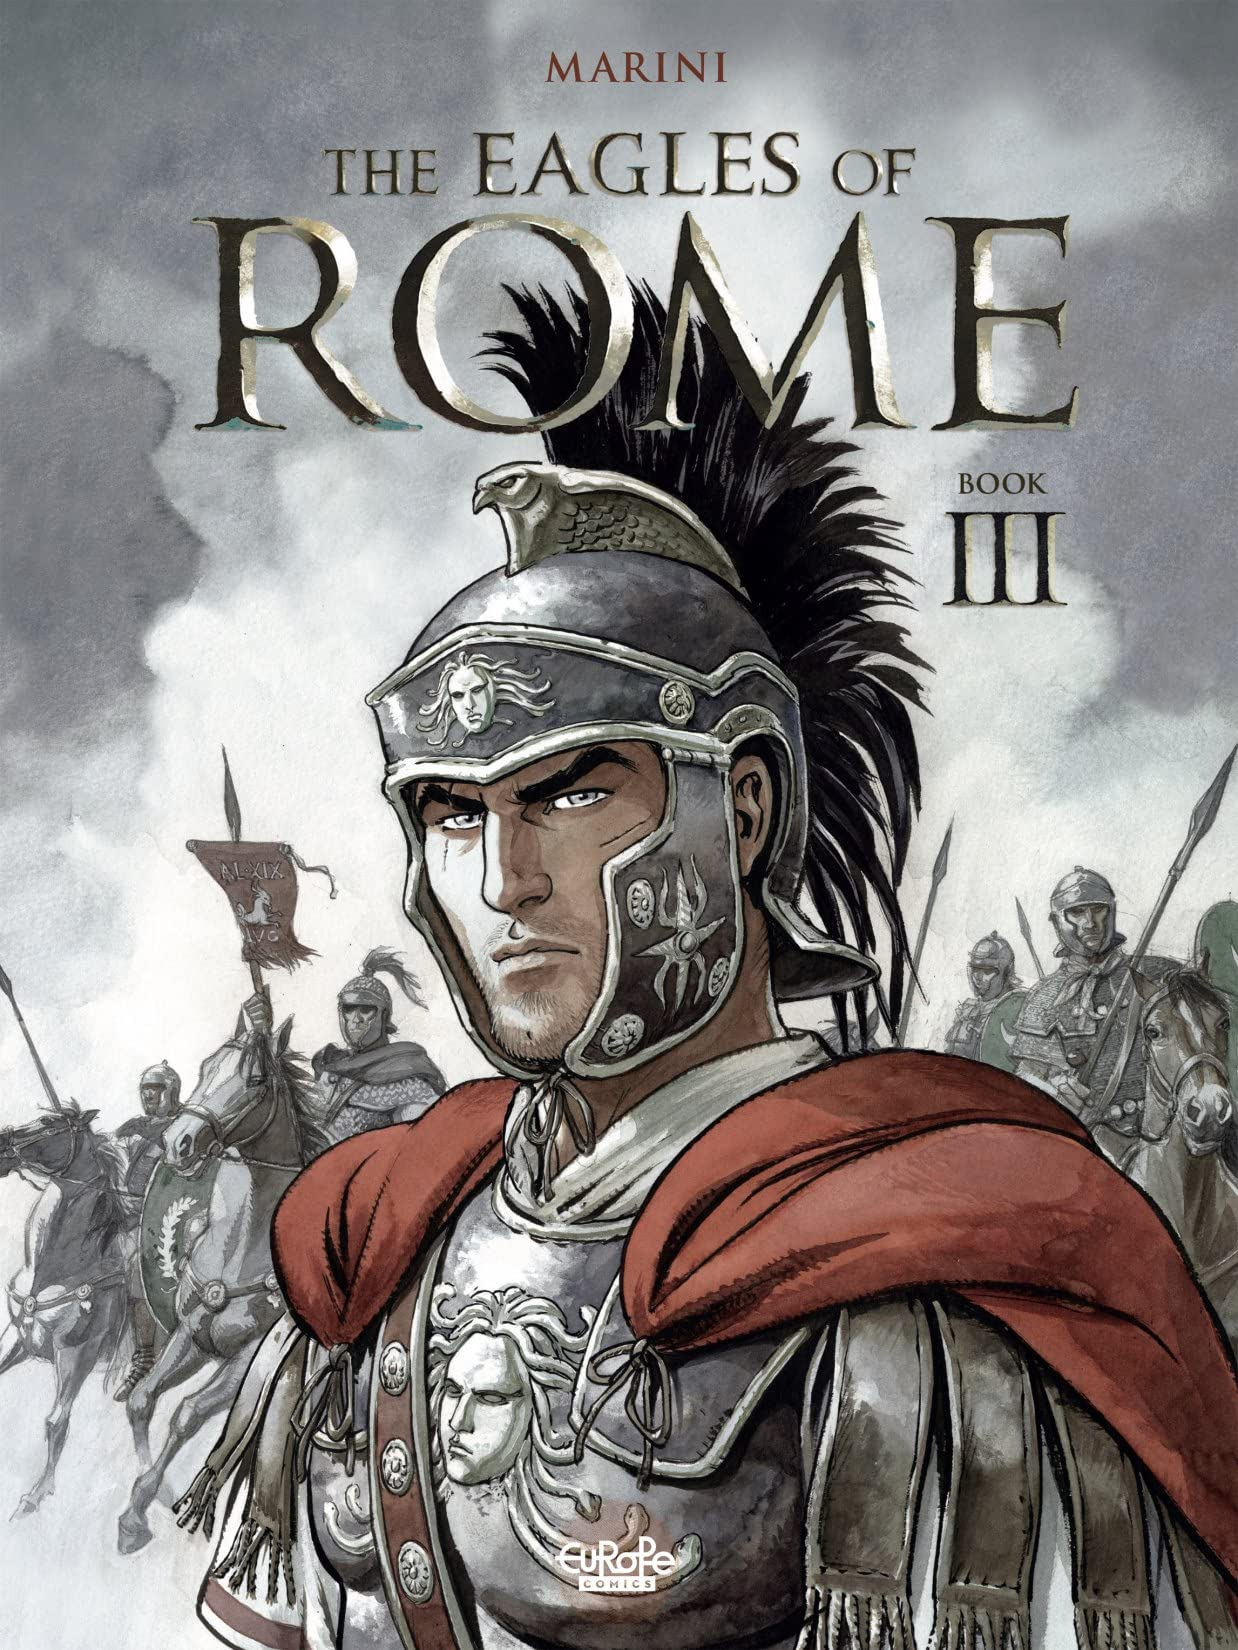 The Eagles of Rome Vol. 3: Book III